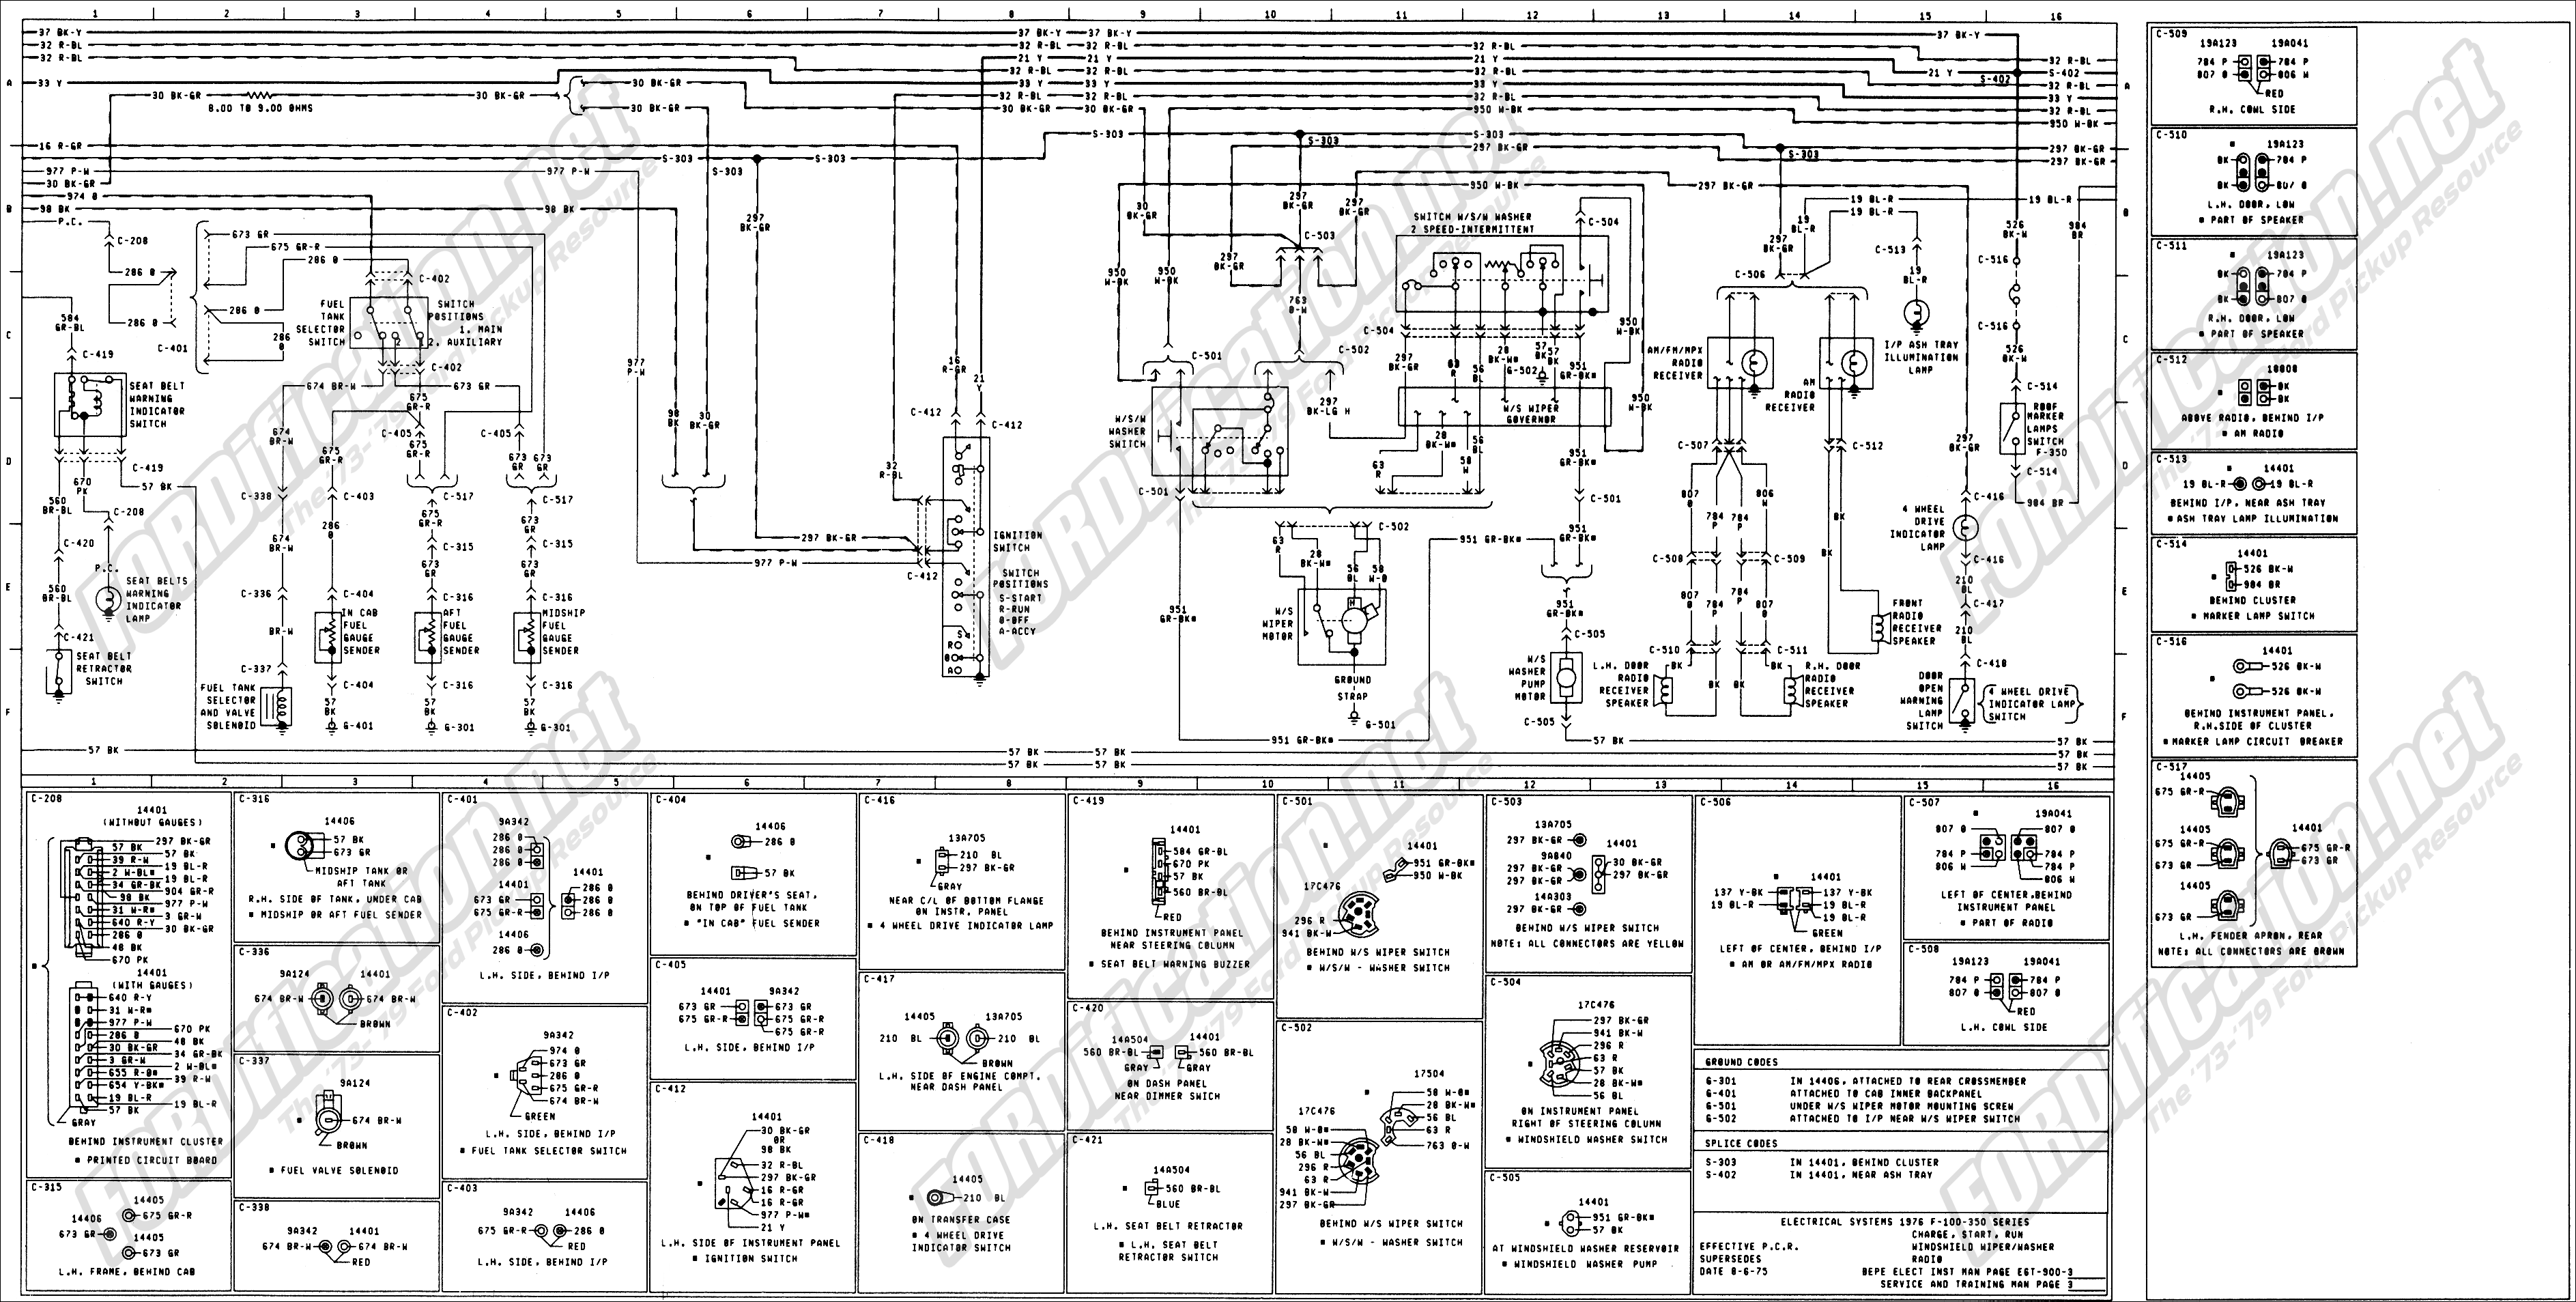 F100 Tail Light Wiring Diagram For 76 Guide And Troubleshooting Of 2001 Sport Trac Schematic 1973 1979 Ford Truck Diagrams Schematics Fordification Net Rh Trailer